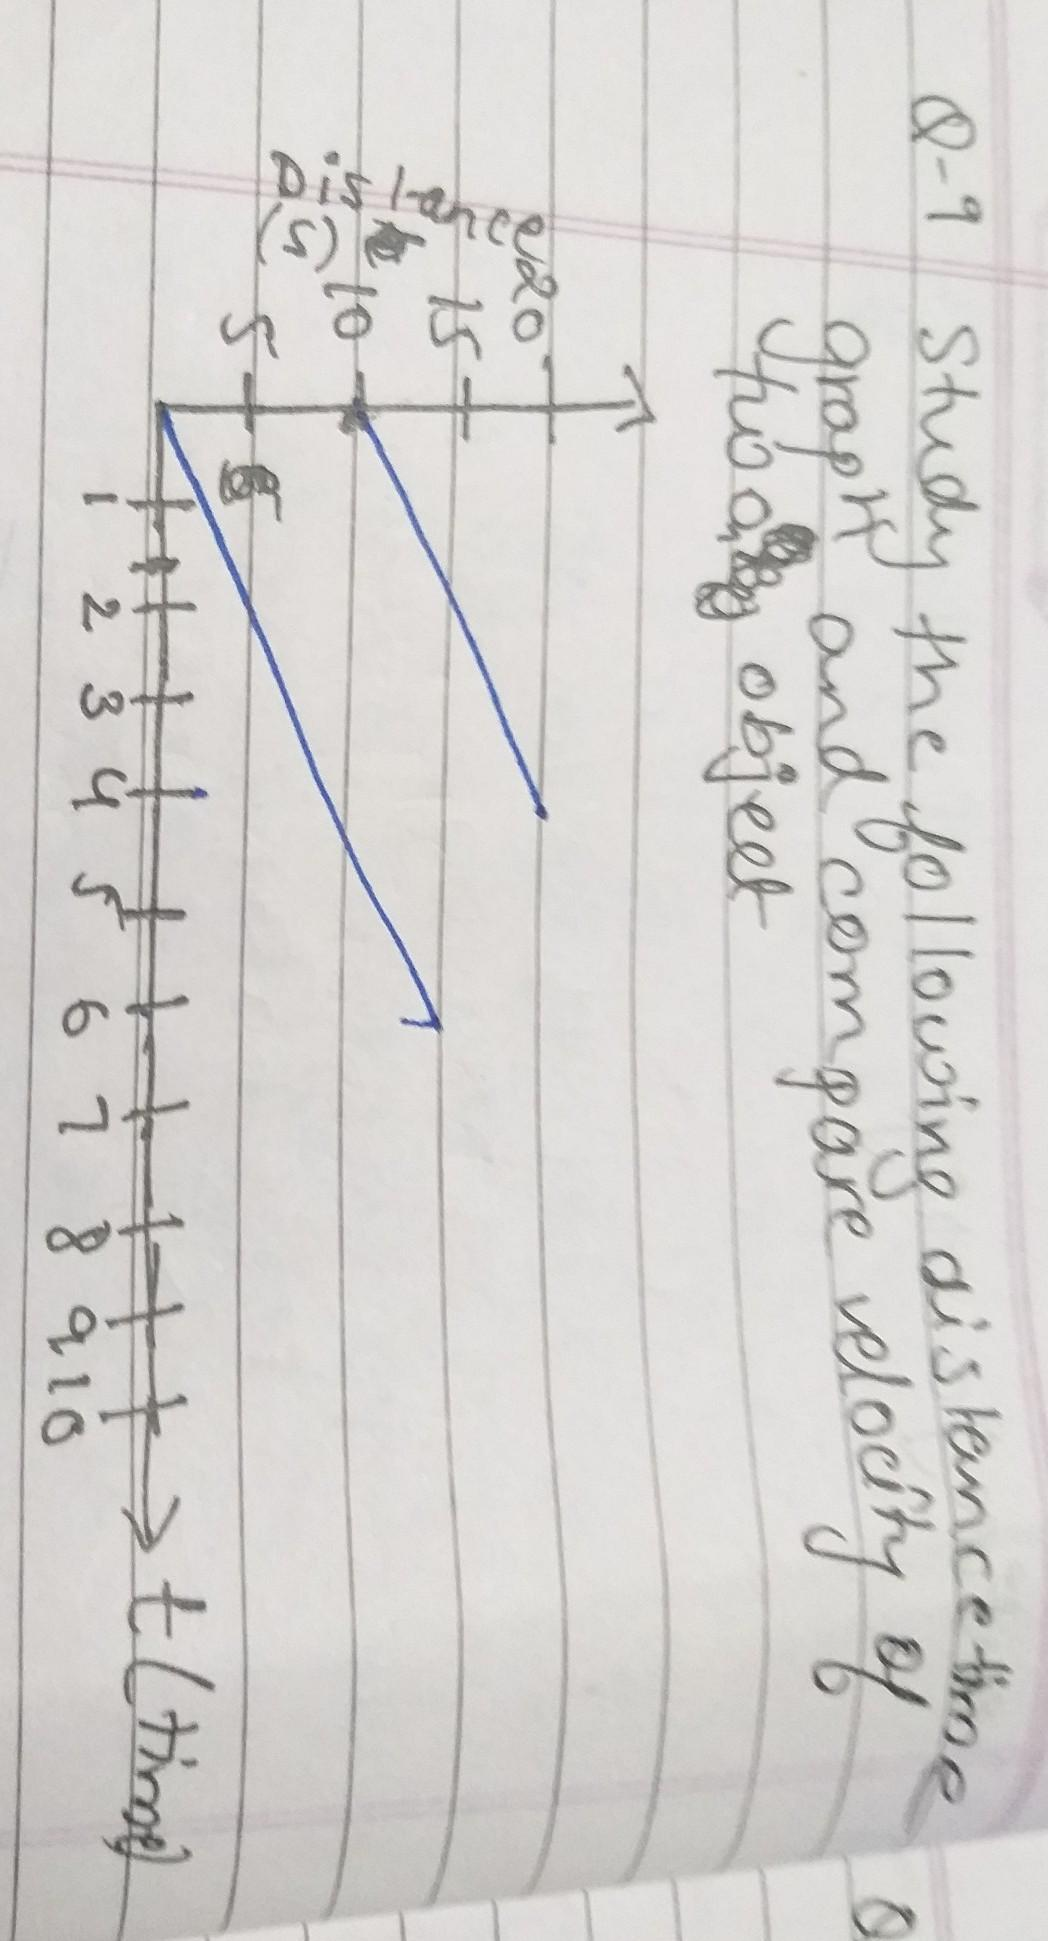 Study The Following Distance Time Graph And Compare The Velocity Of Two Object